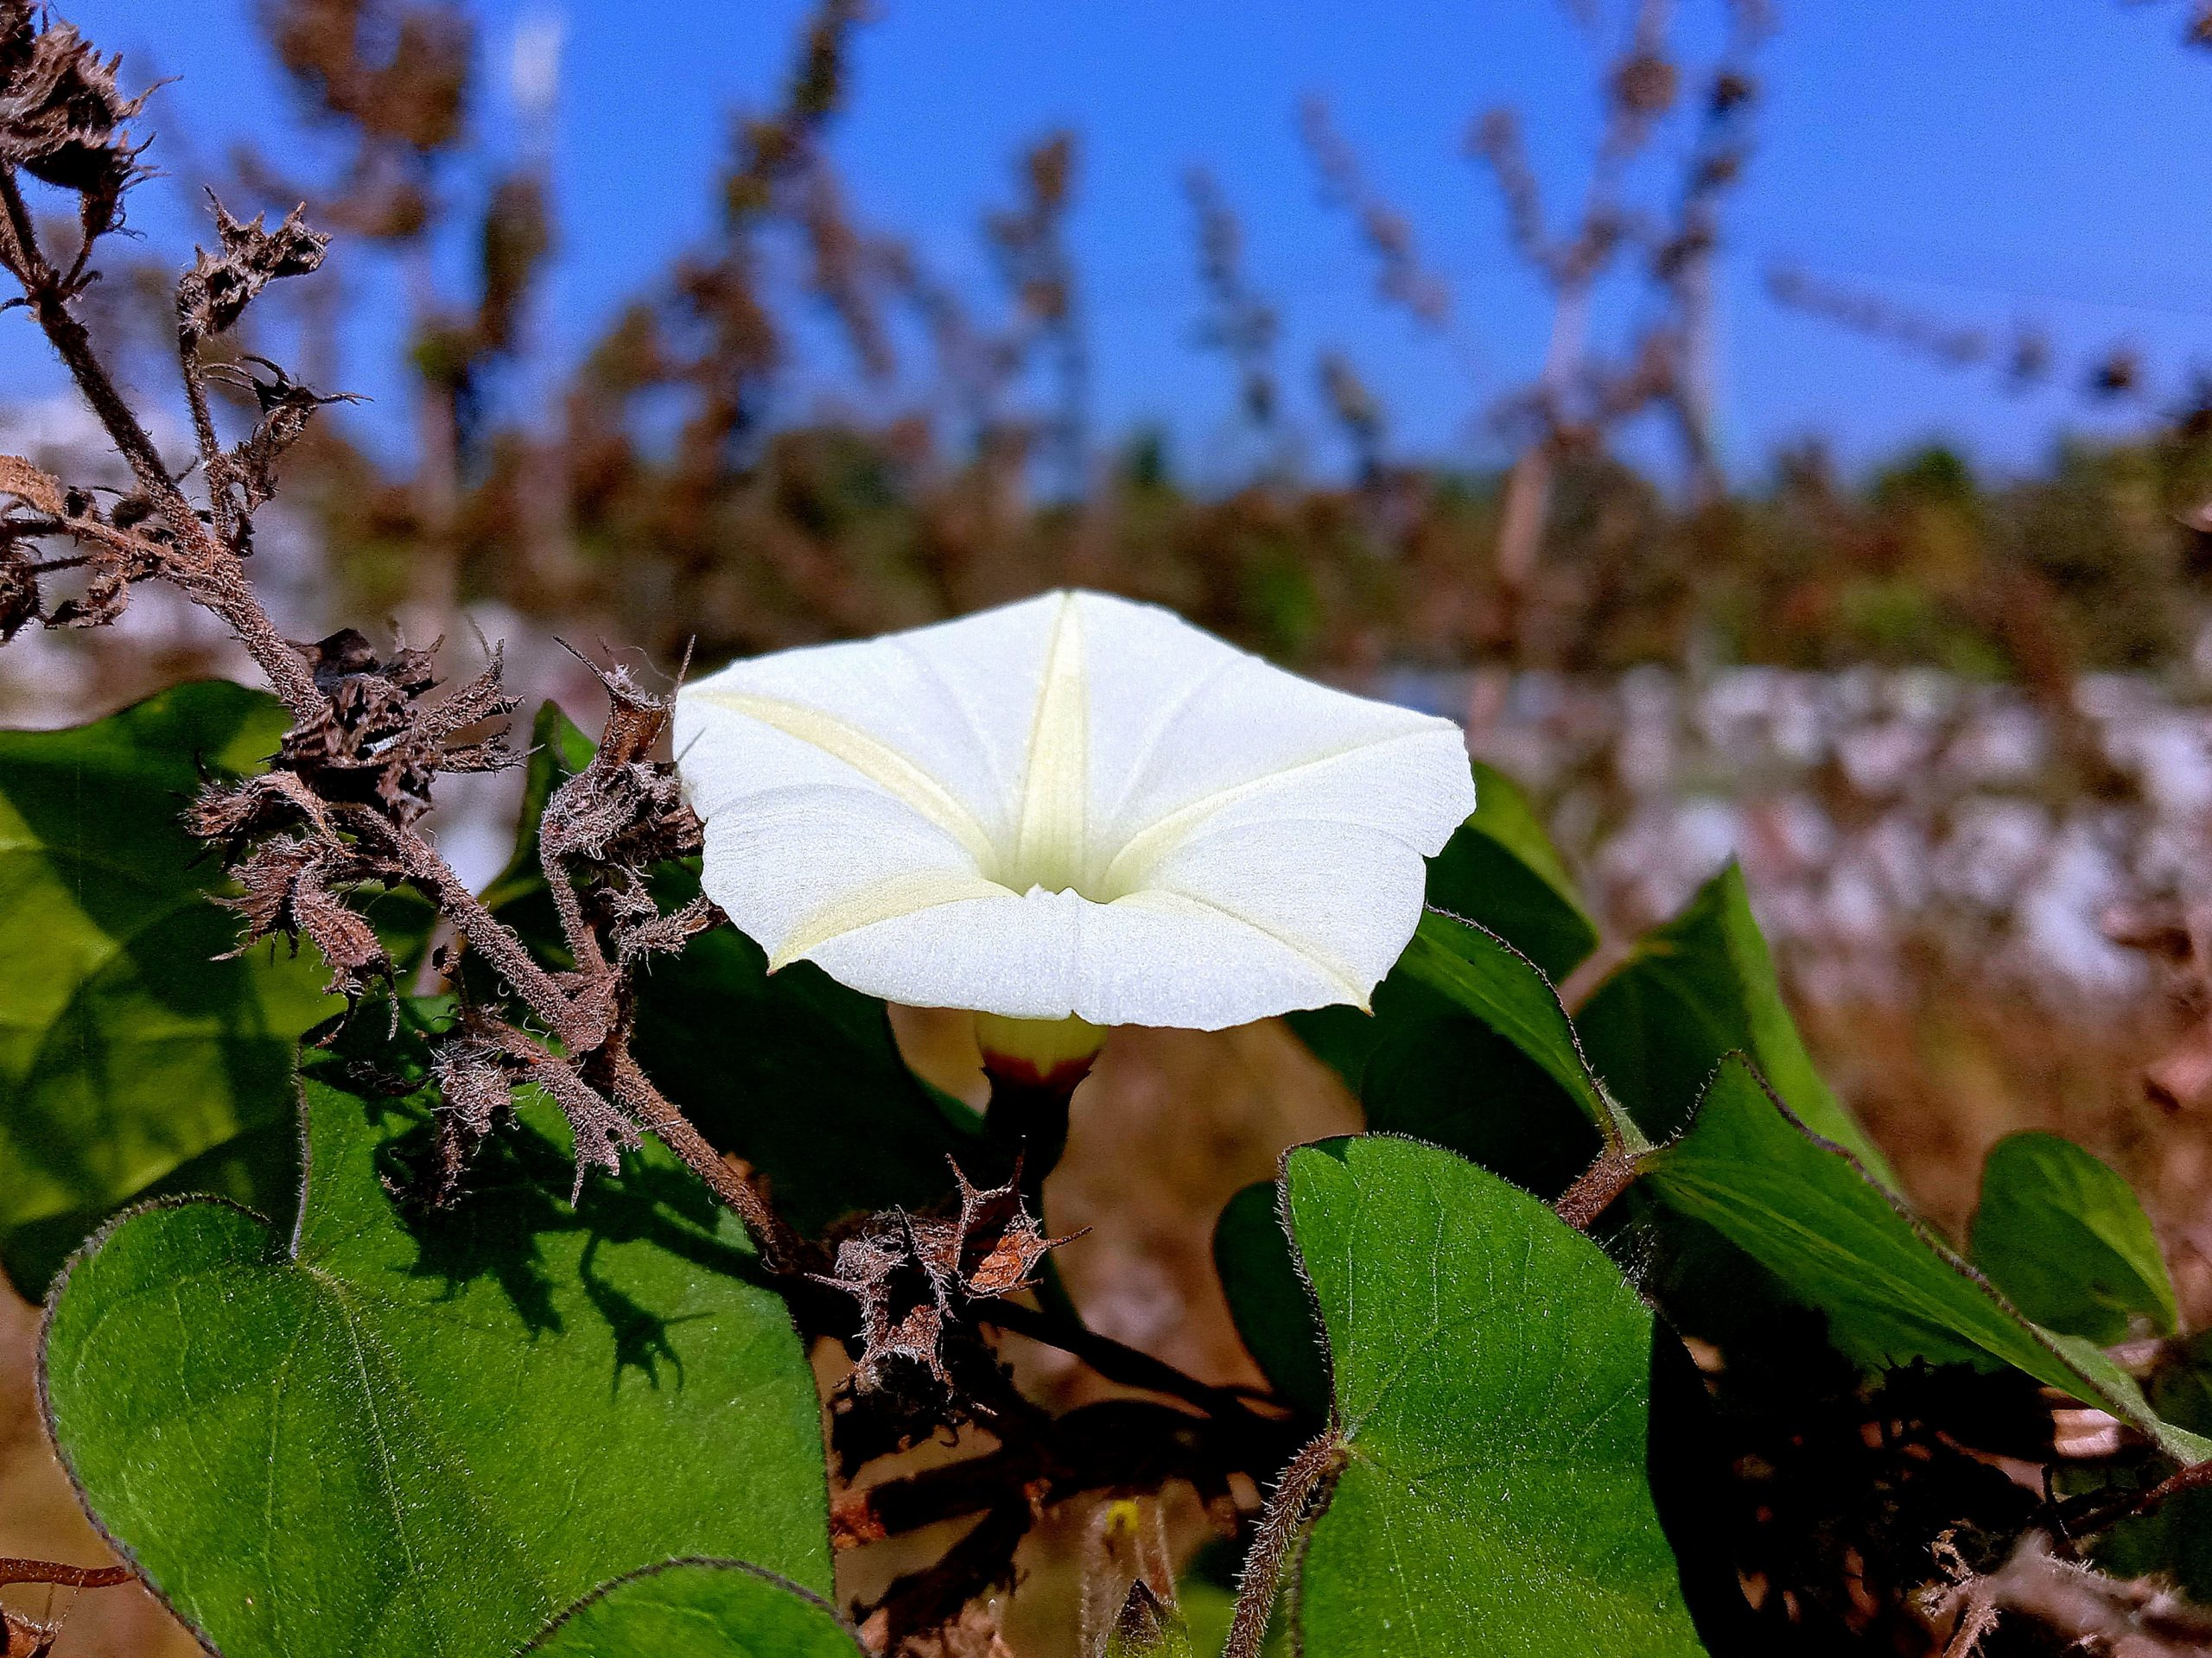 Blooming Ipomoea Obscura